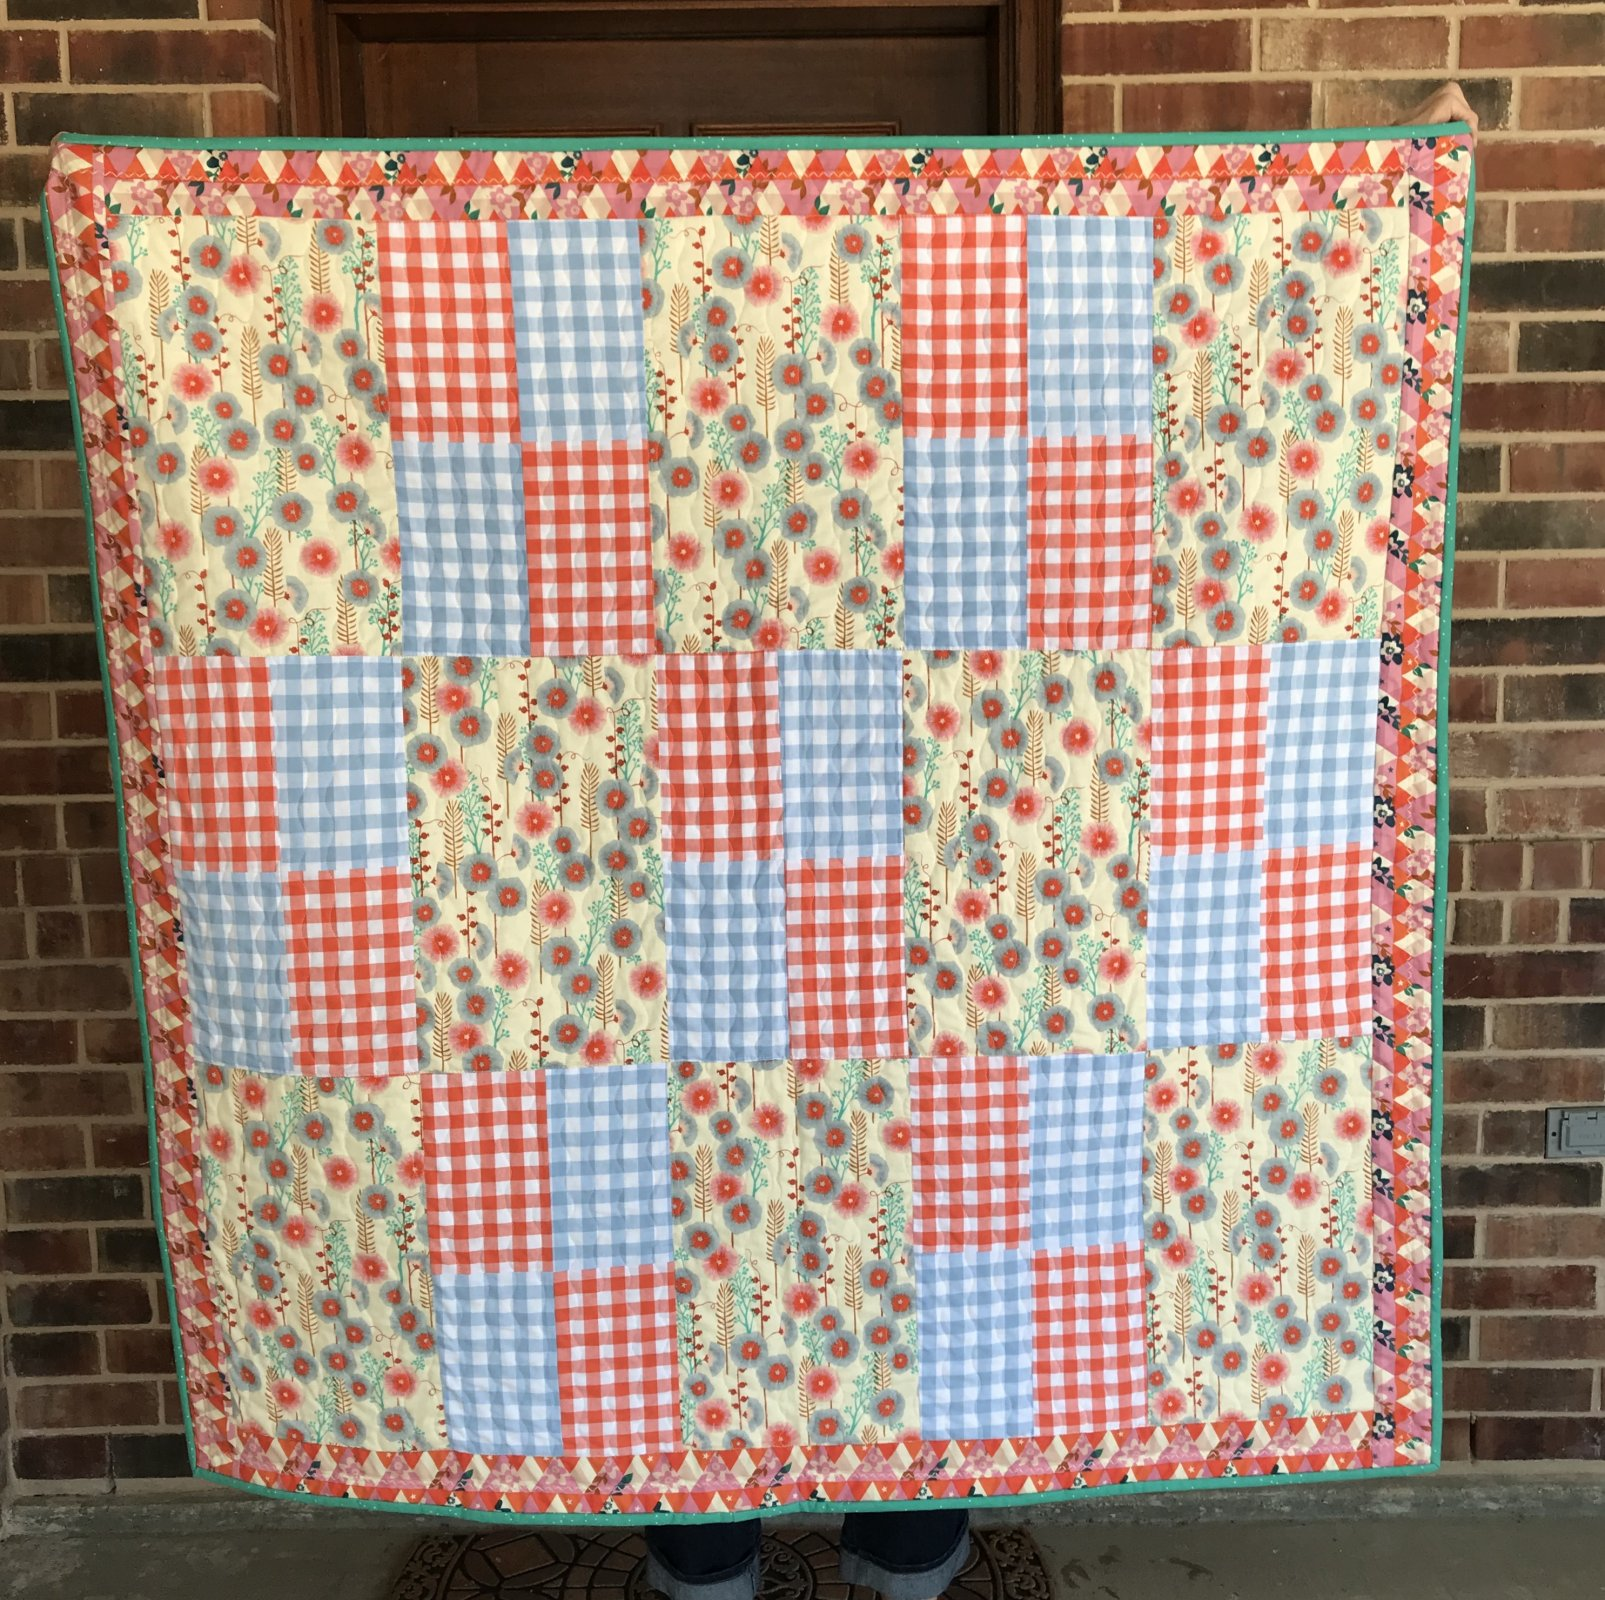 Hollyhocks Quilt Kit (includes binding; excludes backing)